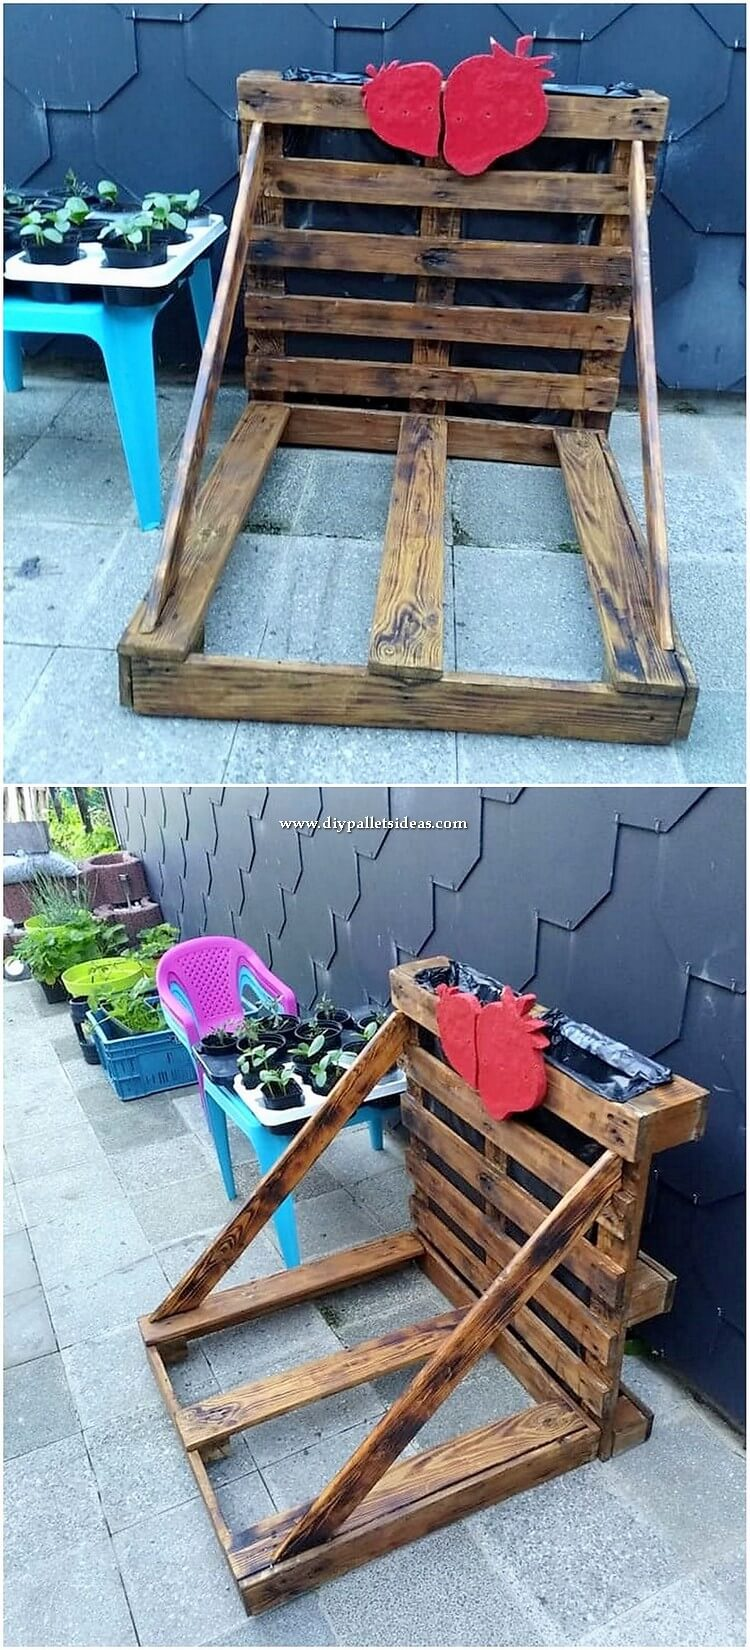 Pallet Outdoor Garden Creation